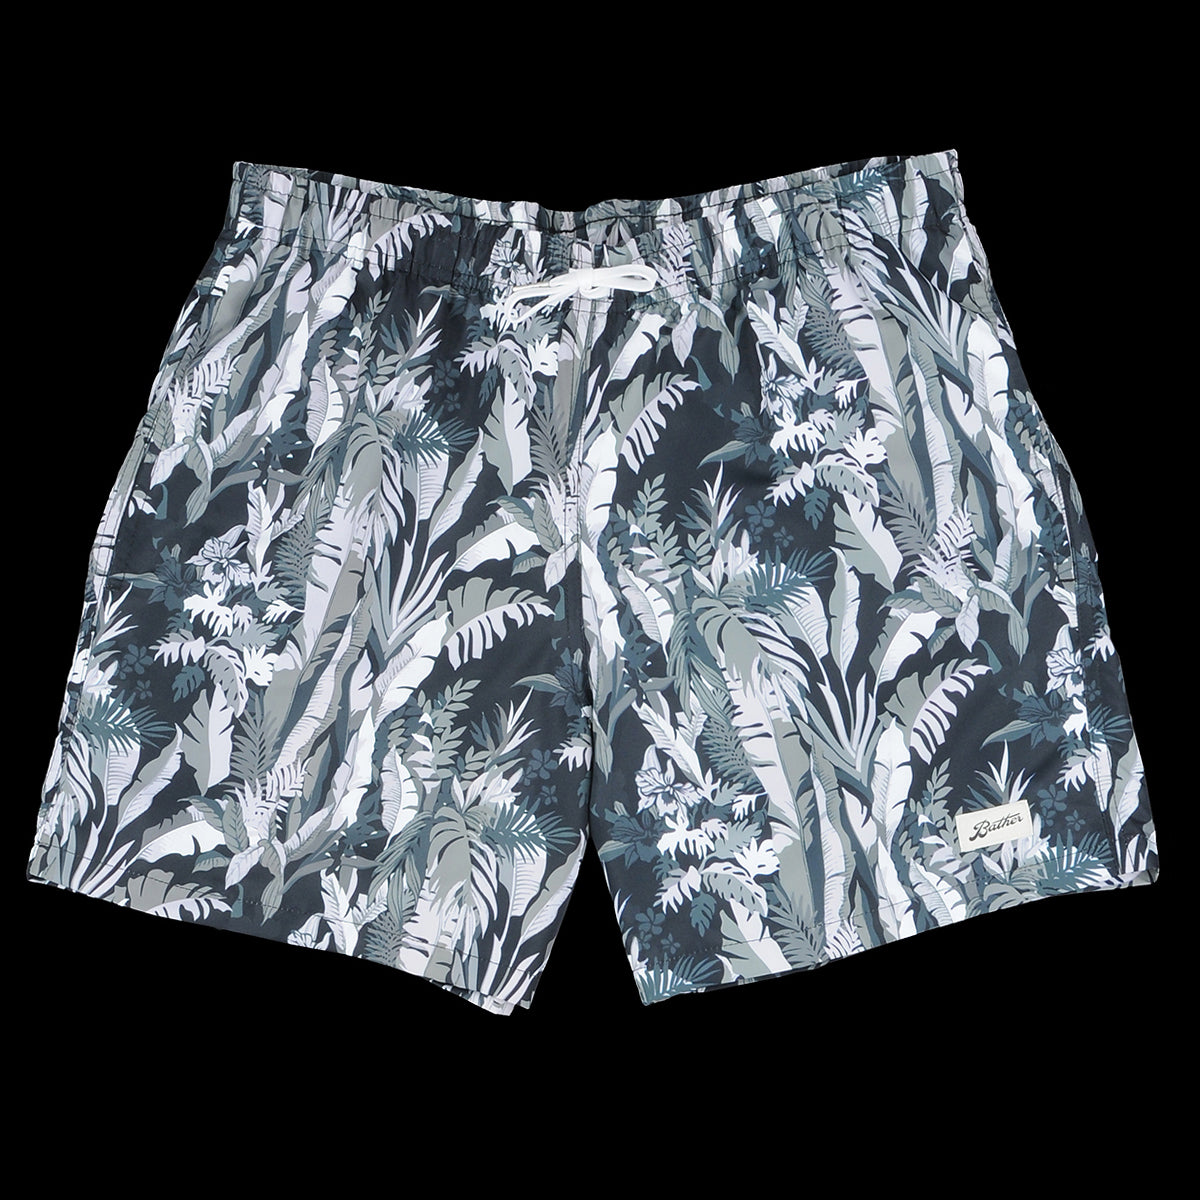 d7bfe7f7a4 Bather - Tropical Forest Swim Trunk in Green & Black - UNIONMADE